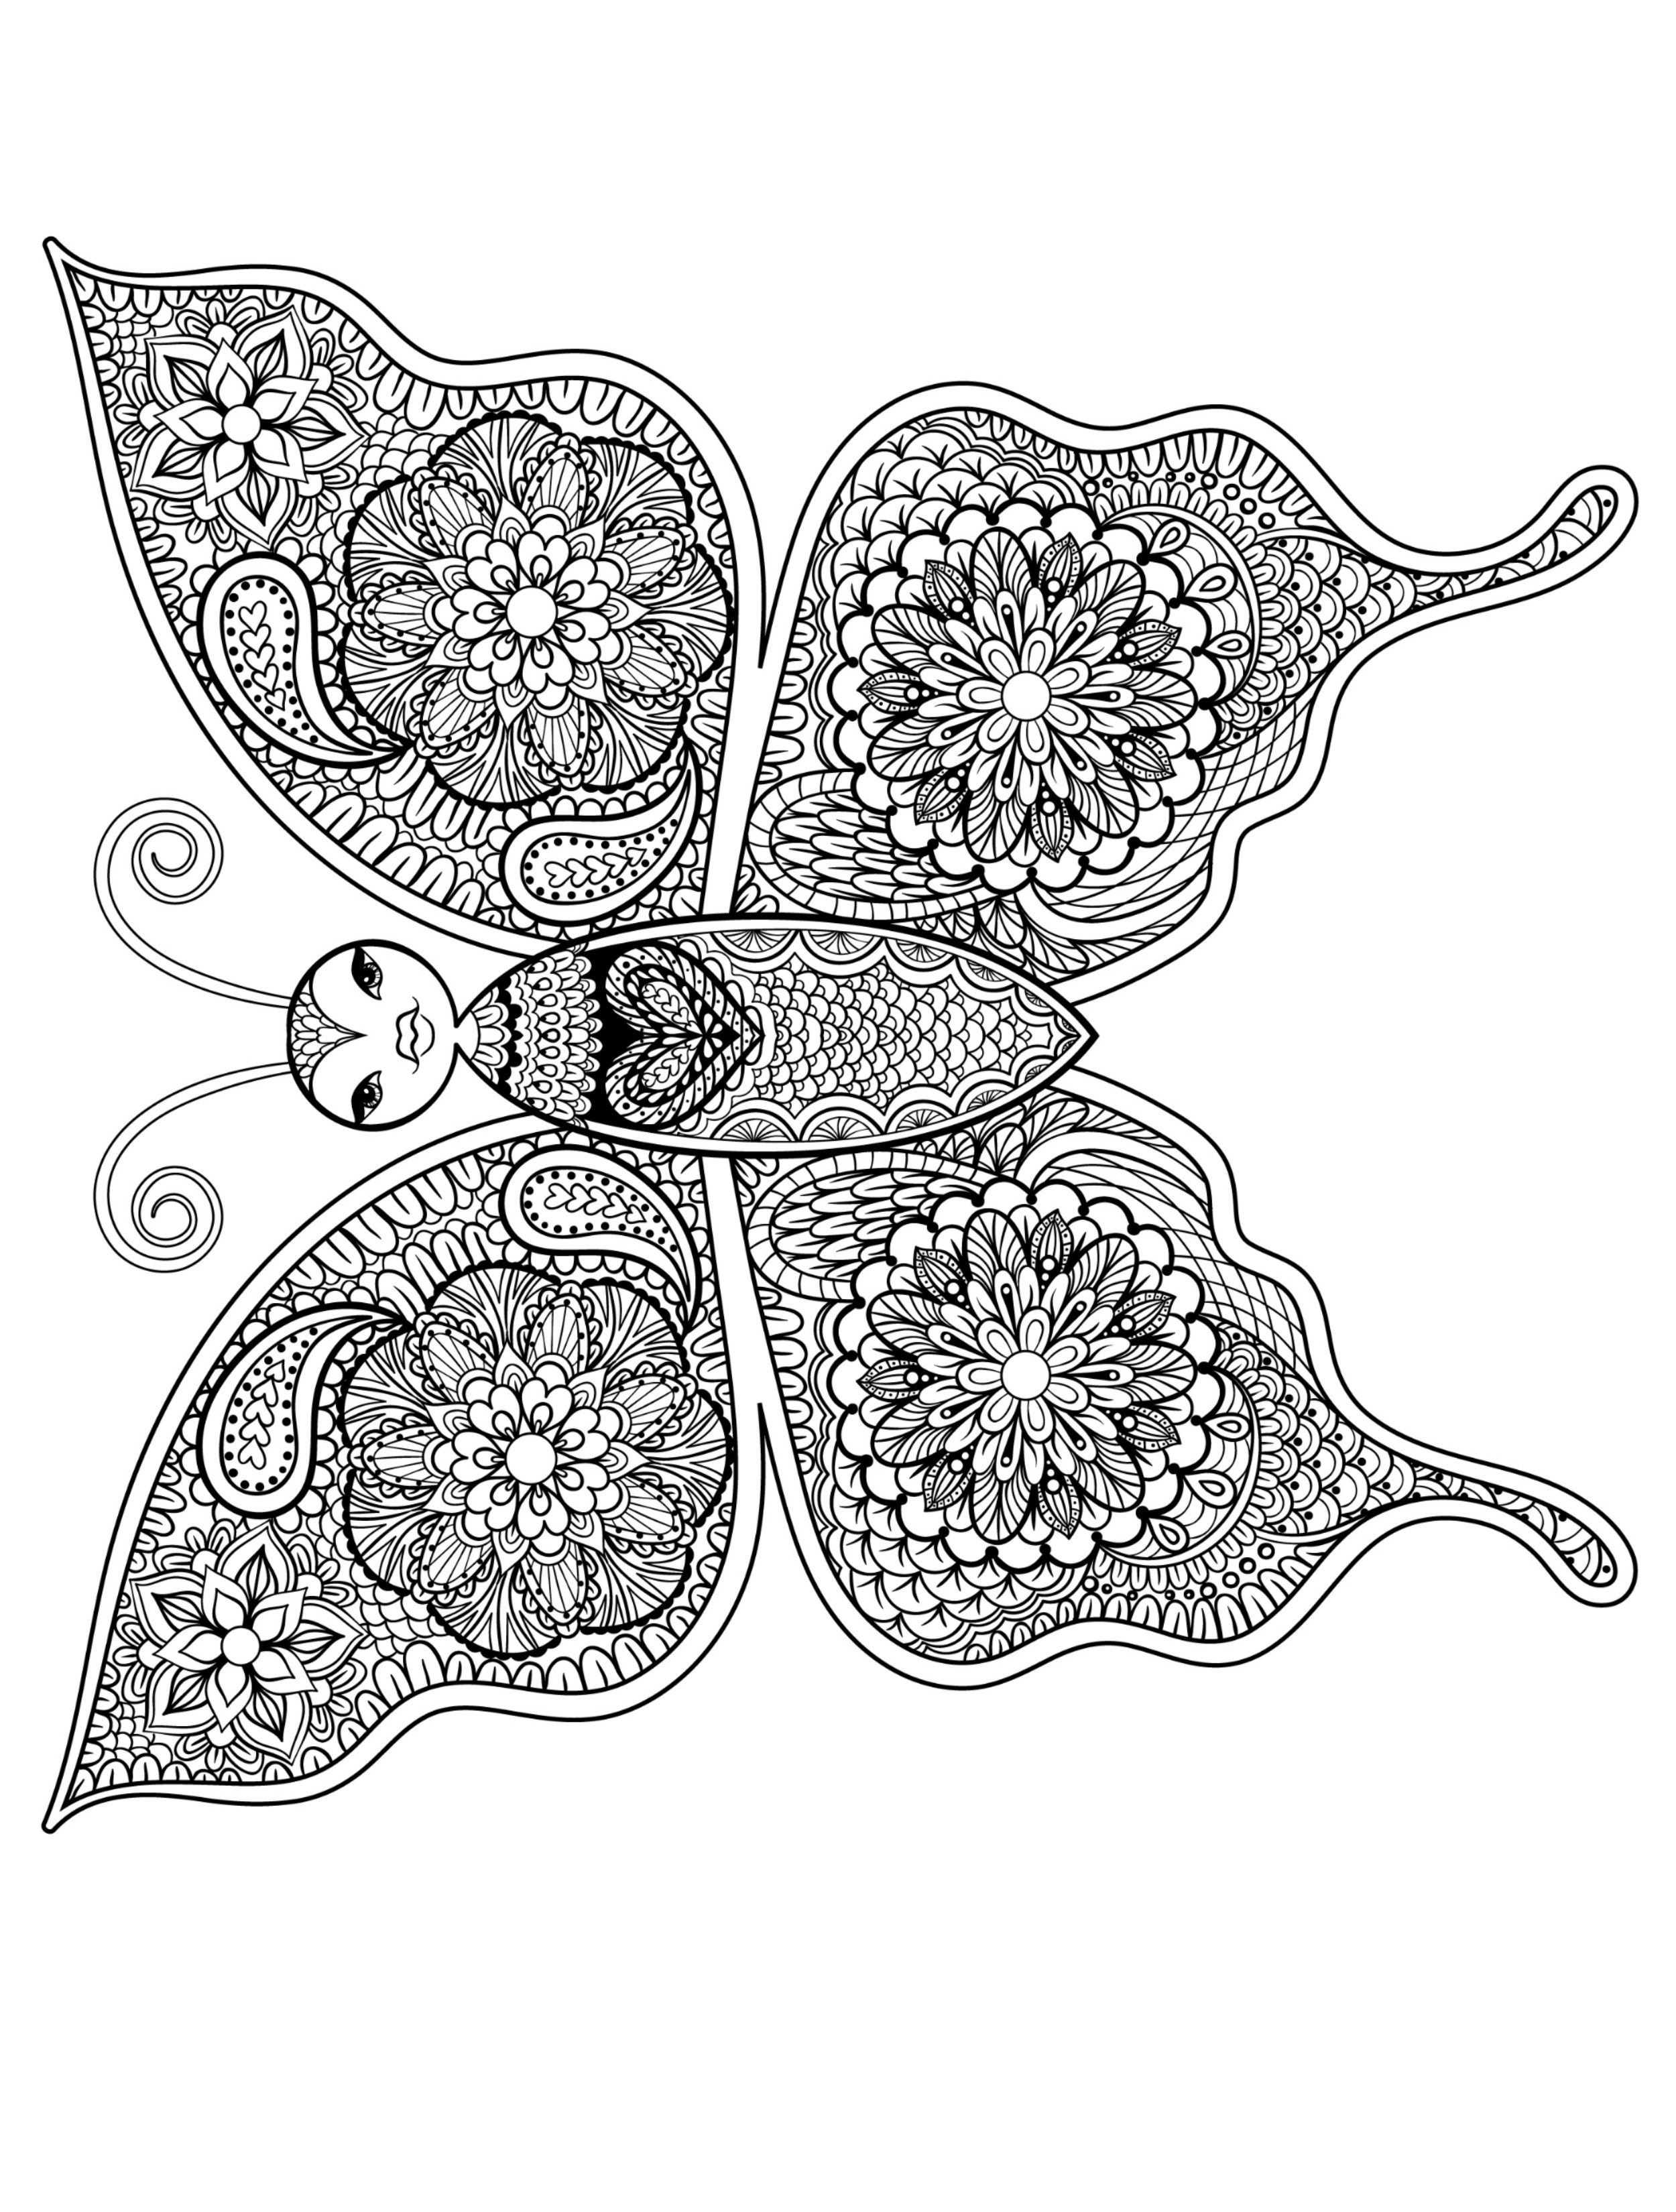 instant download coloring page coloring door chubbymermaid